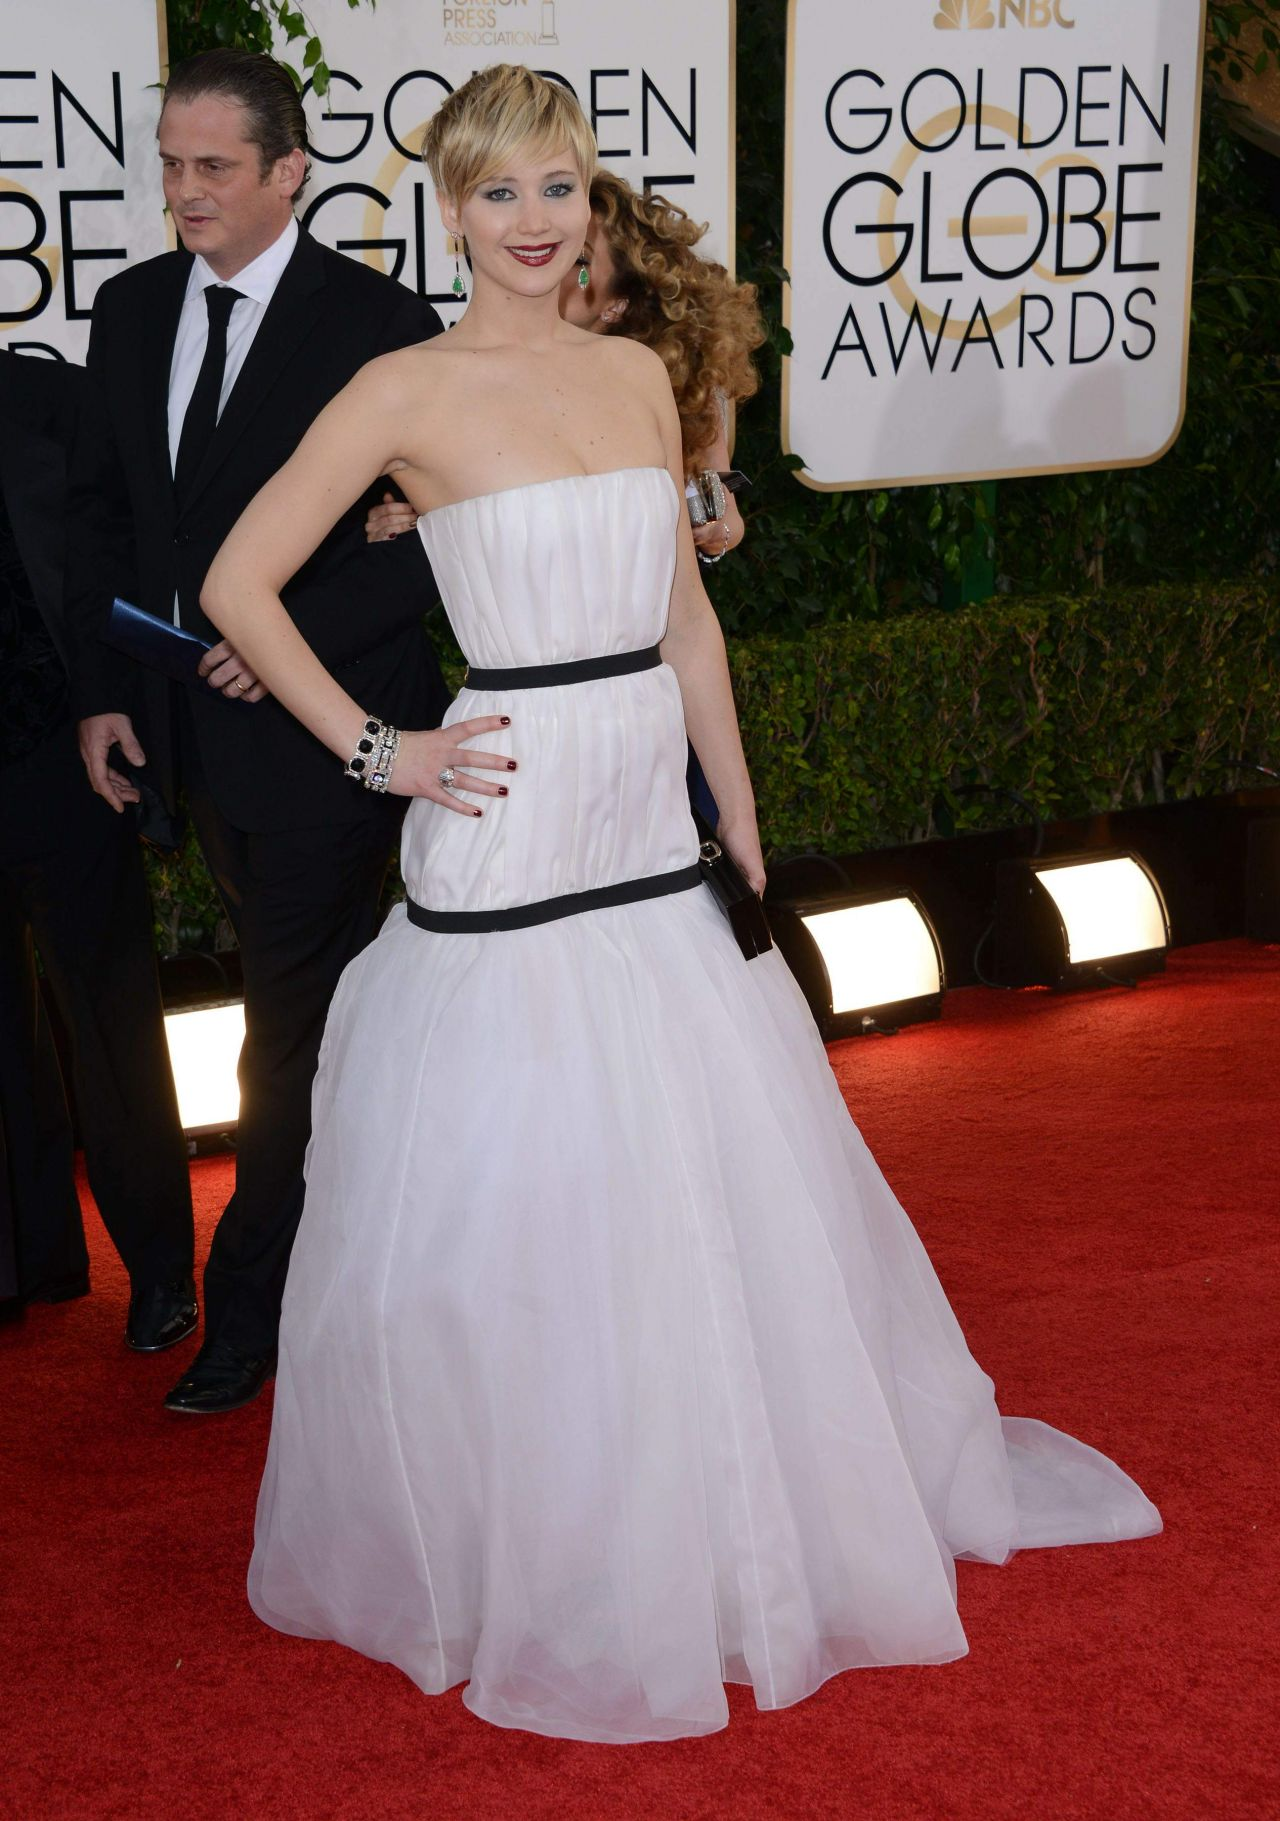 Jennifer lawrence golden globe awards 2014 red carpet ceremony and